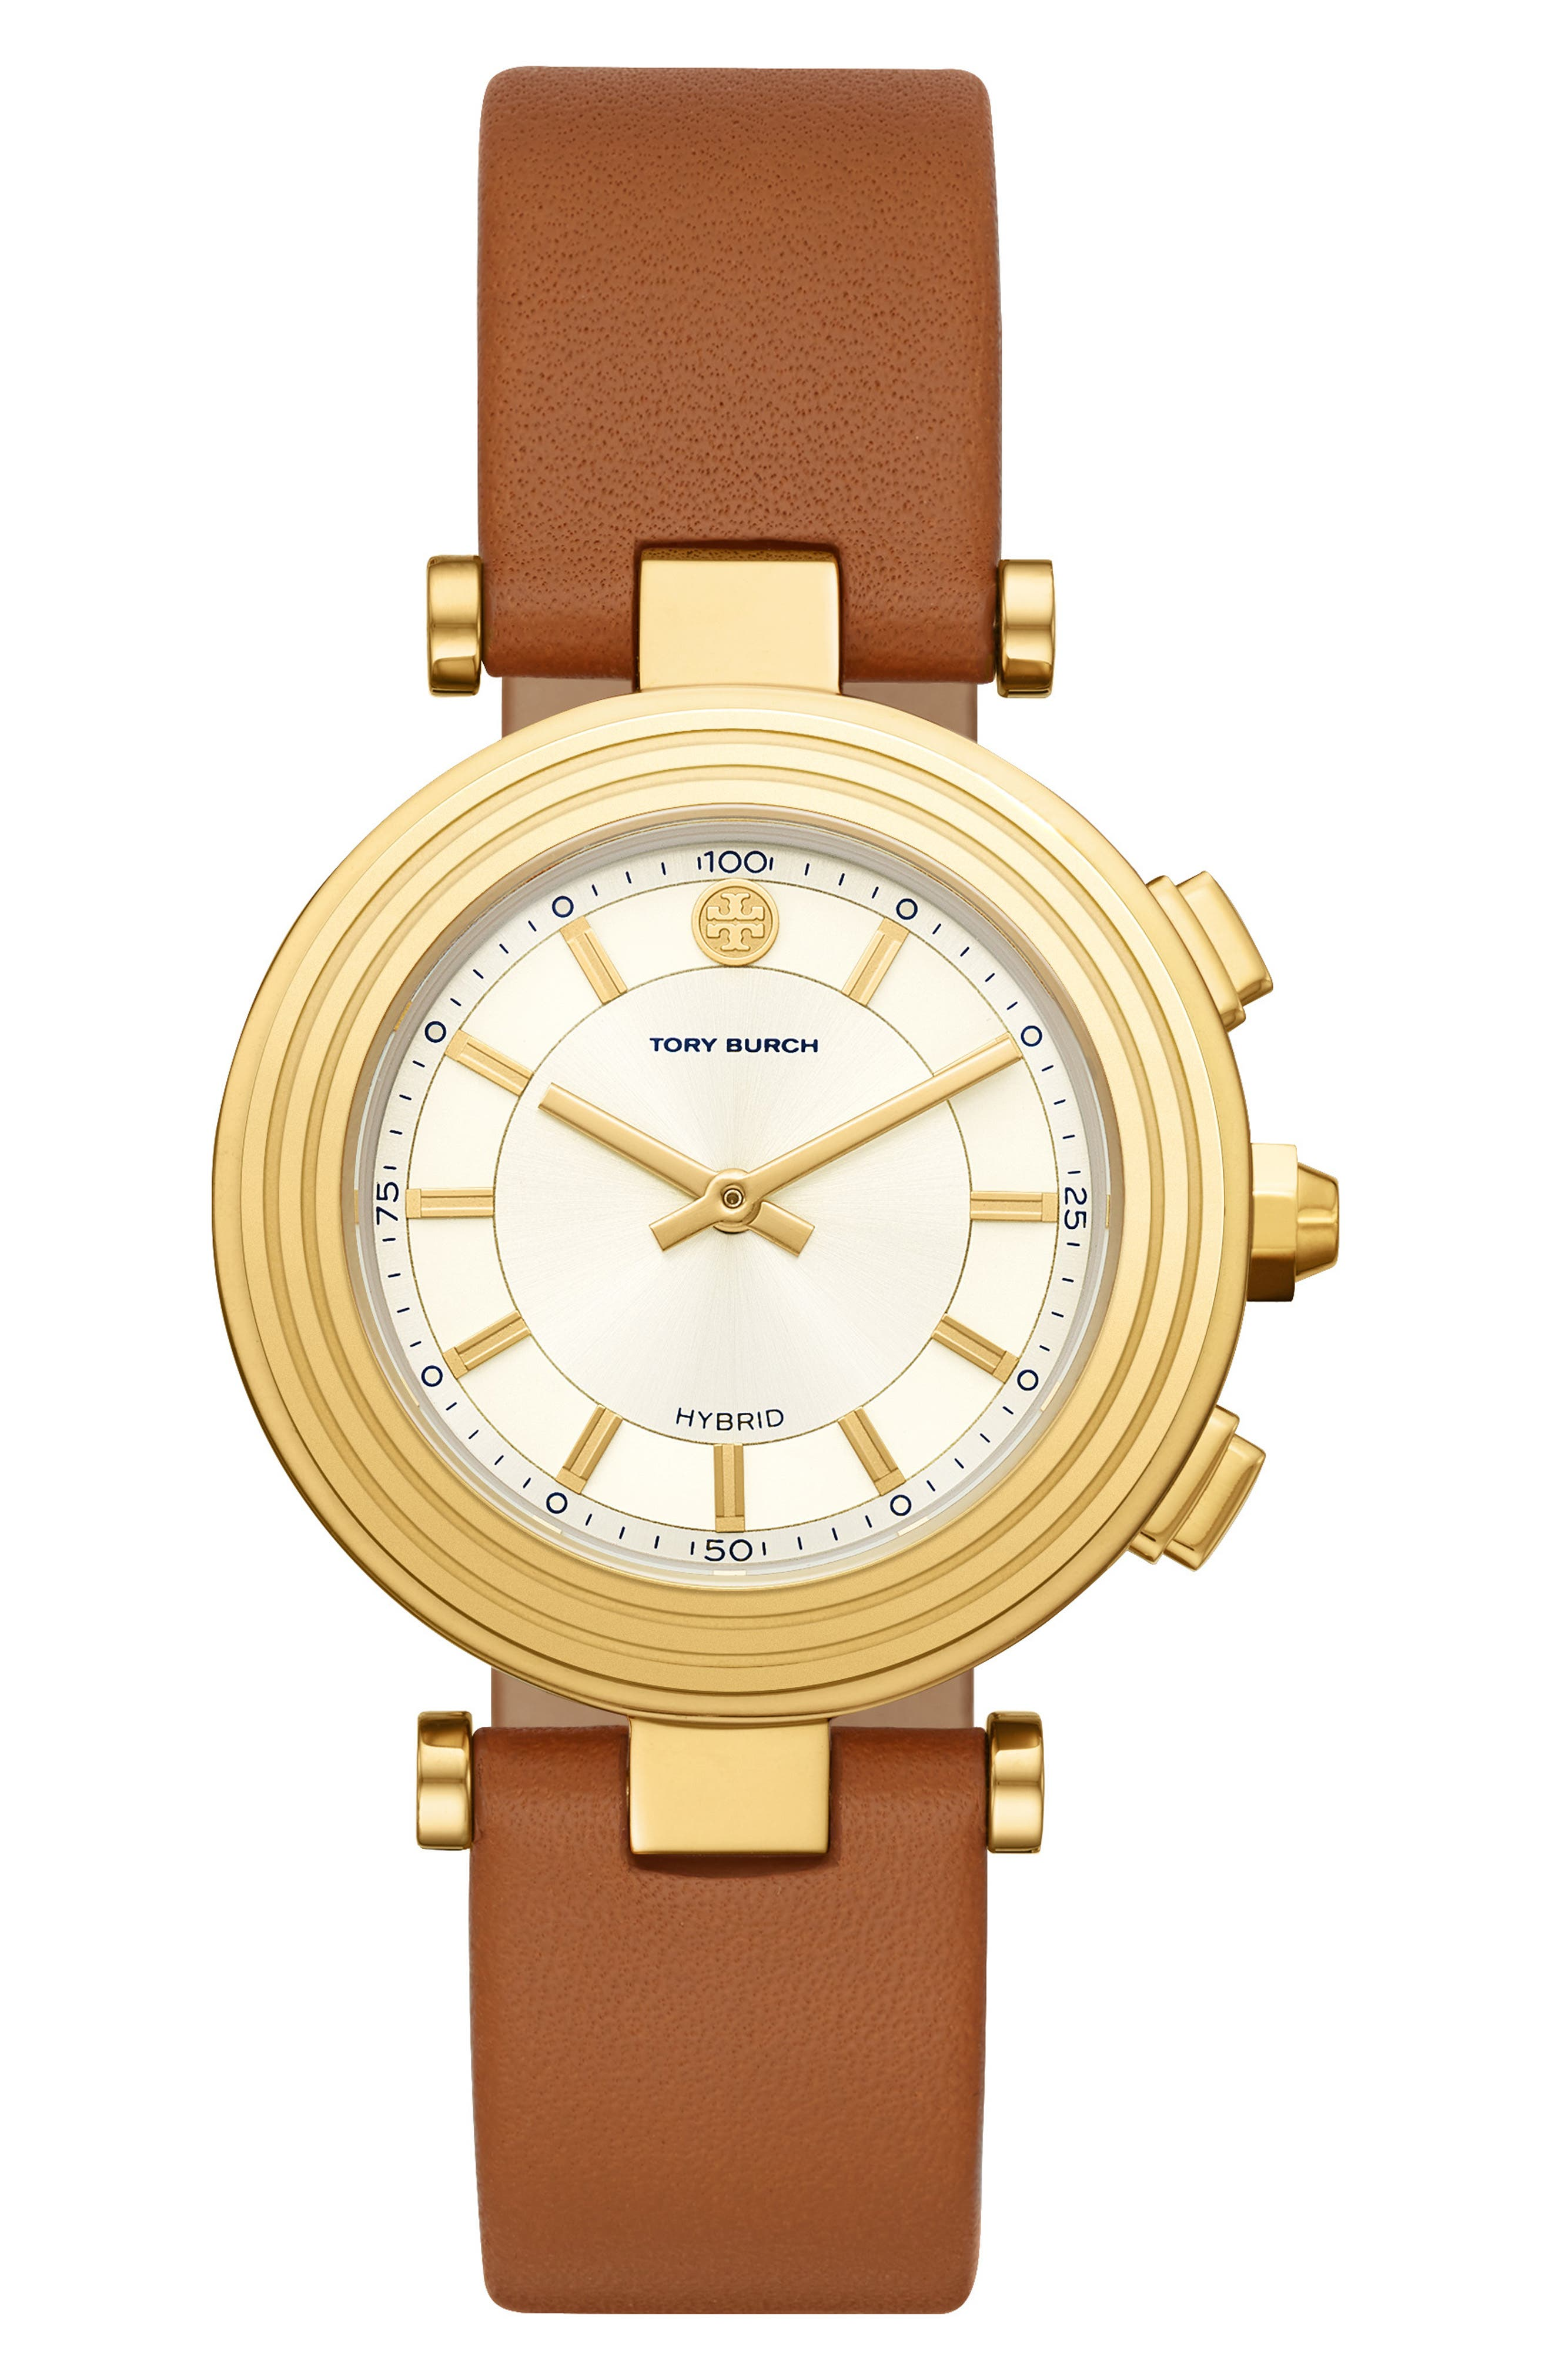 TORY BURCH, ToryTrack Hybrid Smart Watch, 36mm x 46mm, Main thumbnail 1, color, BROWN/ WHITE/ GOLD